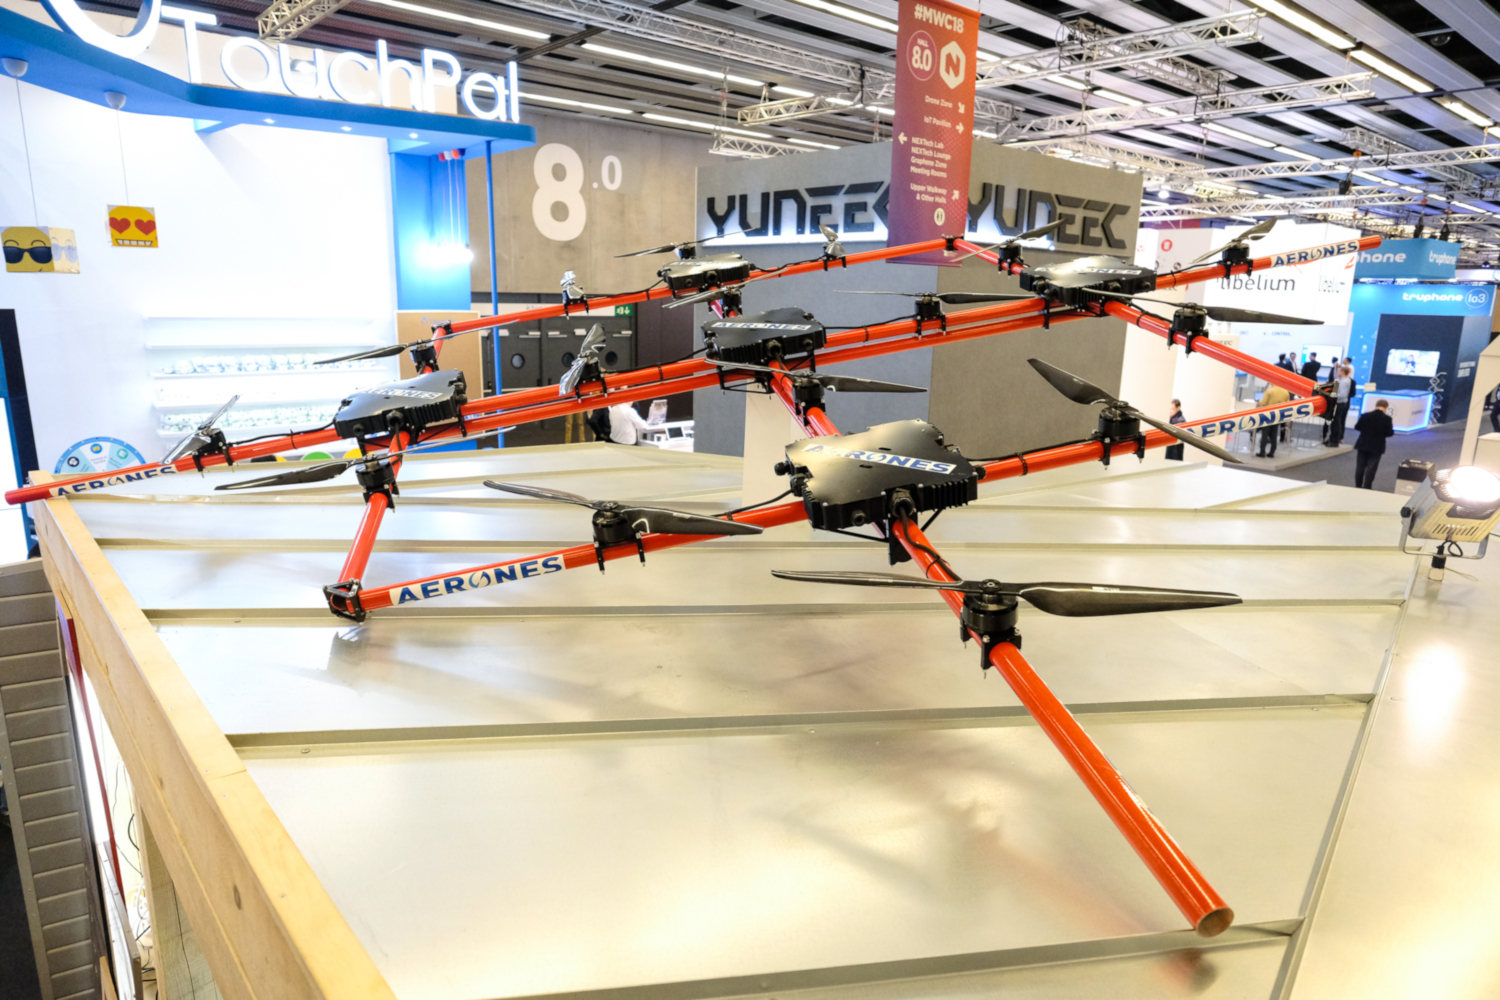 Aerones drone https://www.aerones.com/ presented at Mobile World Congress 2018, Barcelona, Spain (credits: Kārlis Dambrāns / Flickr Creative Commons Attribution 2.0 Generic (CC BY 2.0))